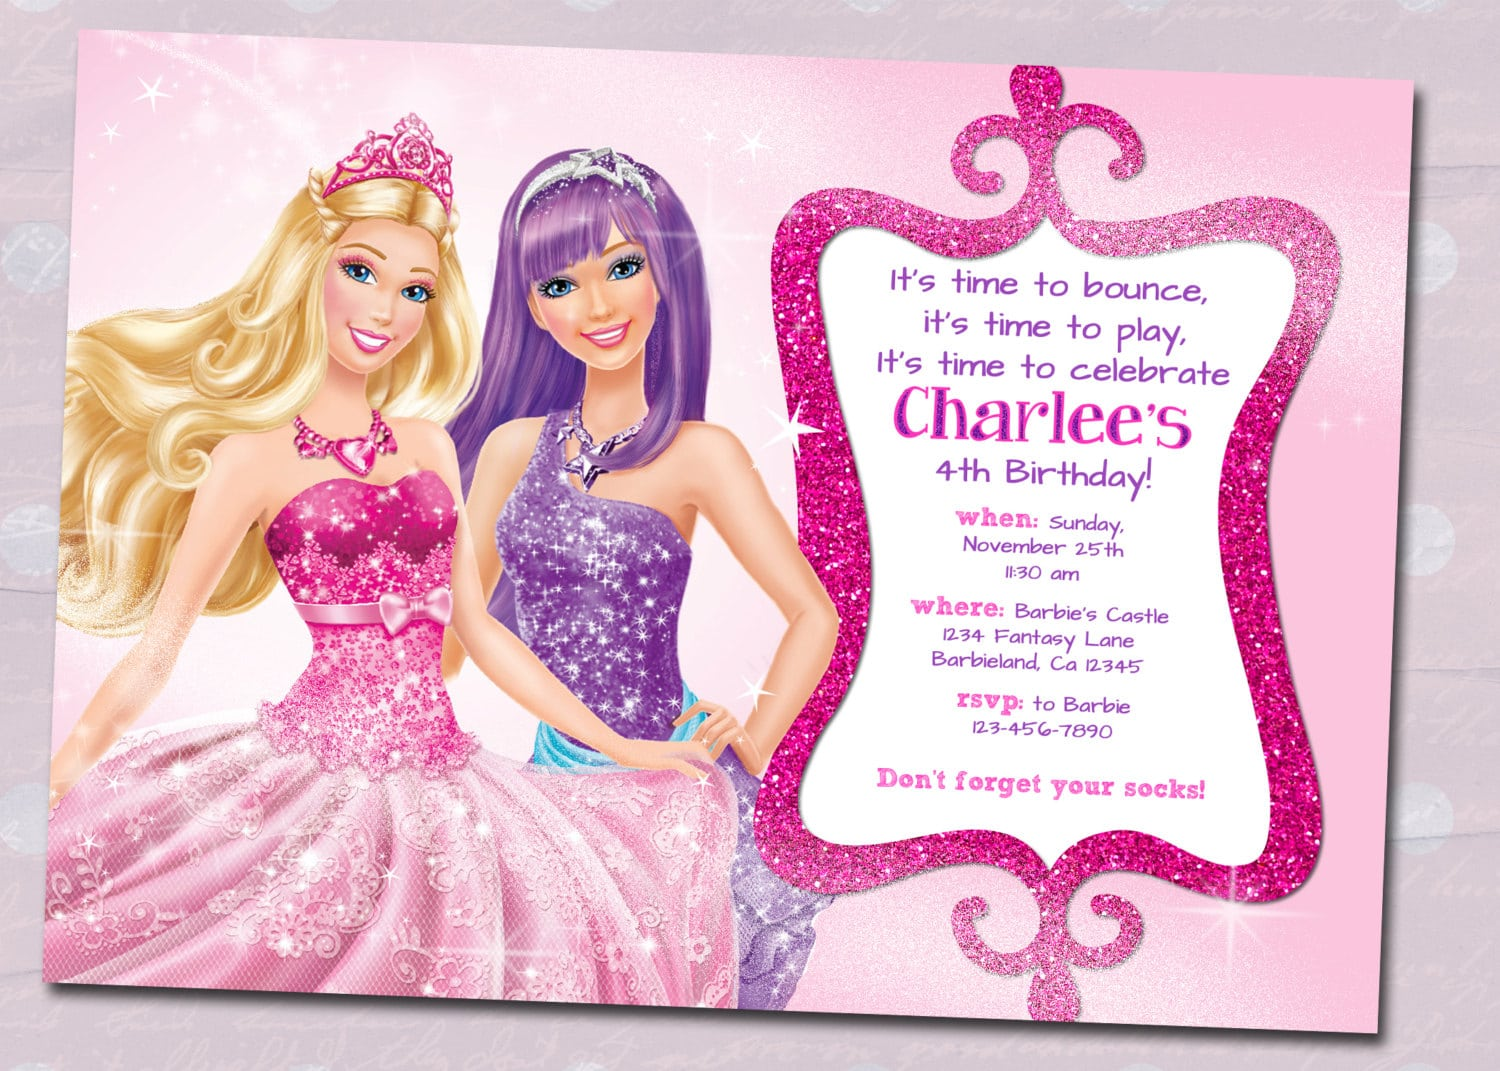 1000+ Images About Barbie Birthday Party Ideas On Pinterest